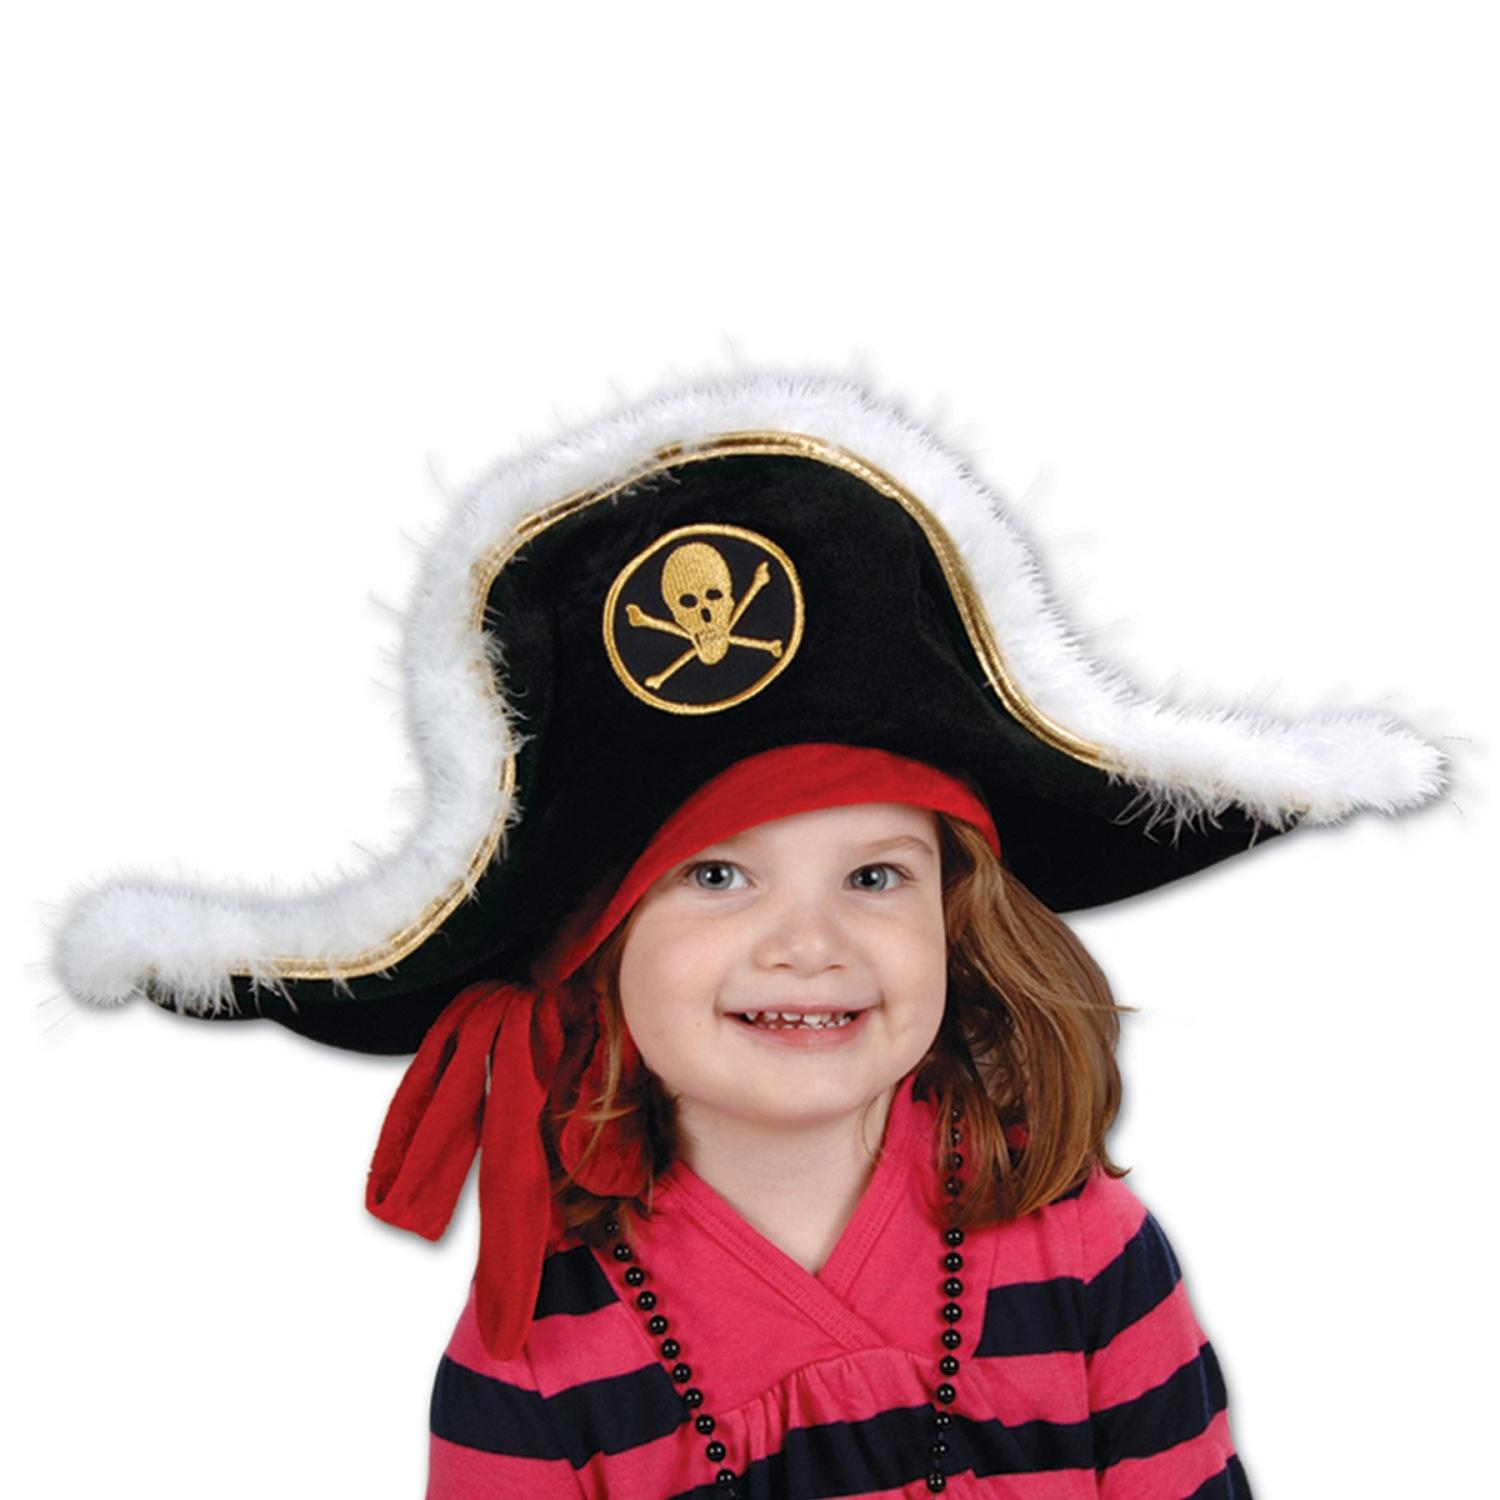 Pack of 6 Black White and Gold Plush Pirate Captain's Party Hat - Child